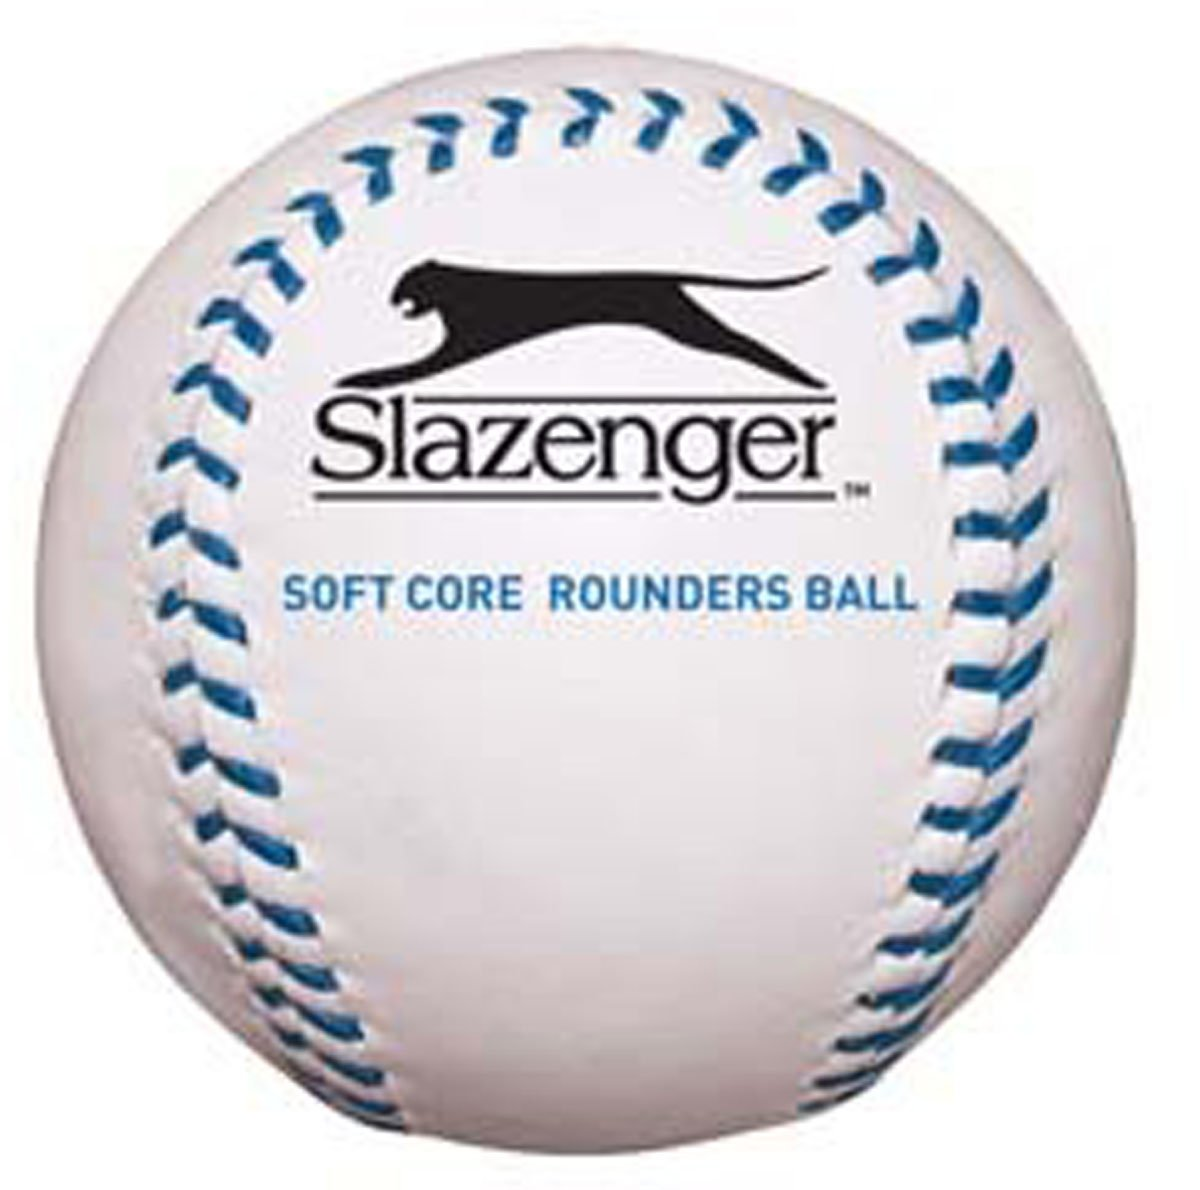 Slazenger Softcore Rounders Baseball Sports Official 1084 Trolley Case 28 Inc Size Ball Outdoors